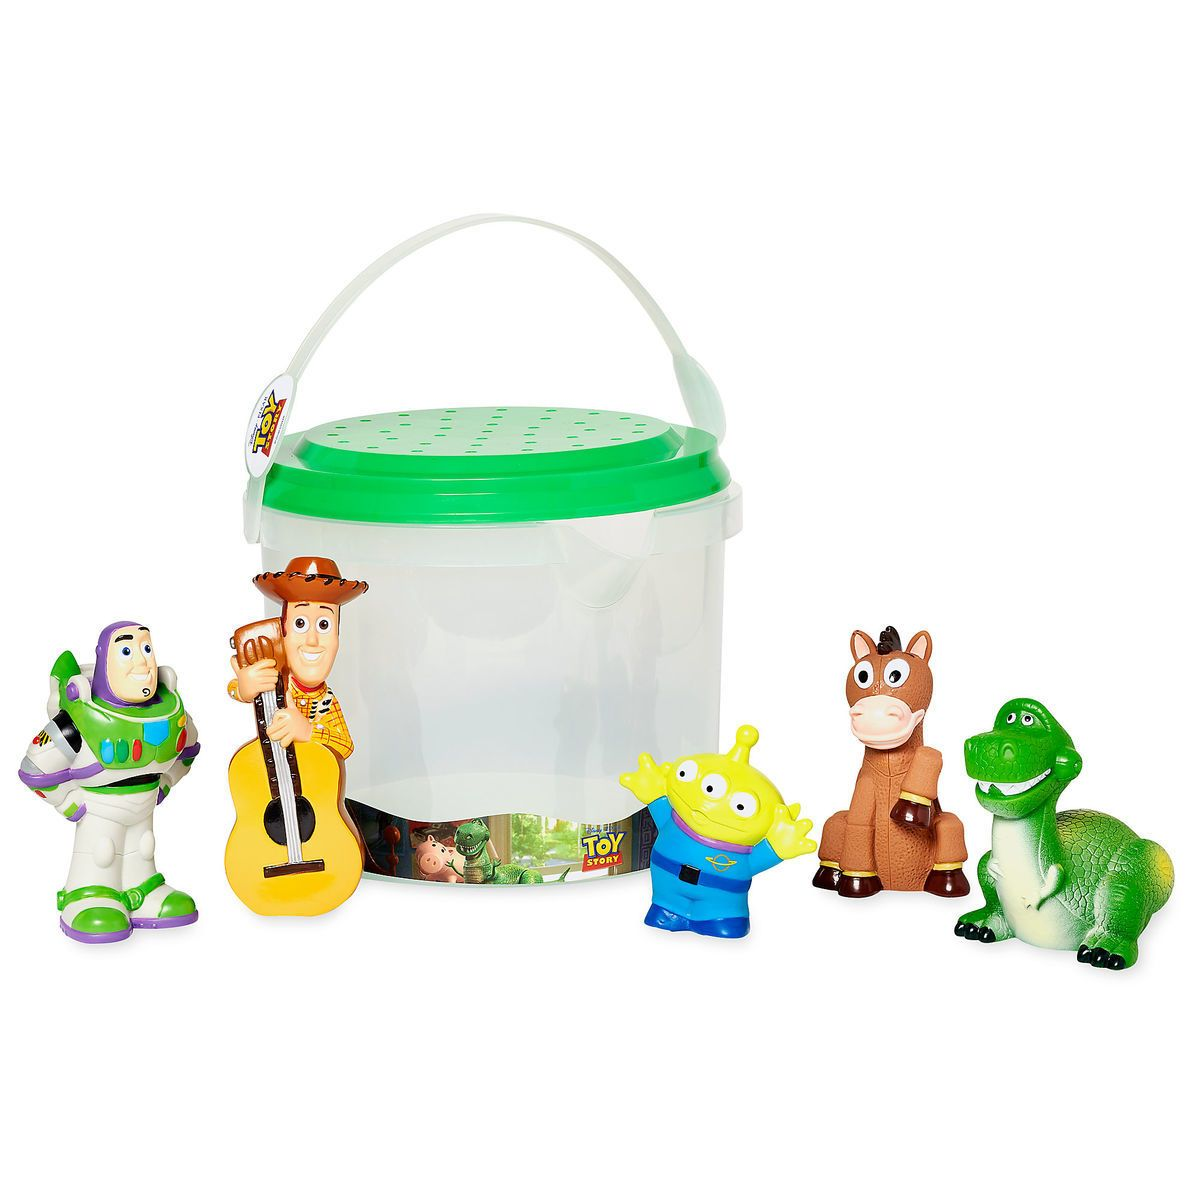 Toy Story Bath Set Disney Store Toys Disney Toys Toy Story